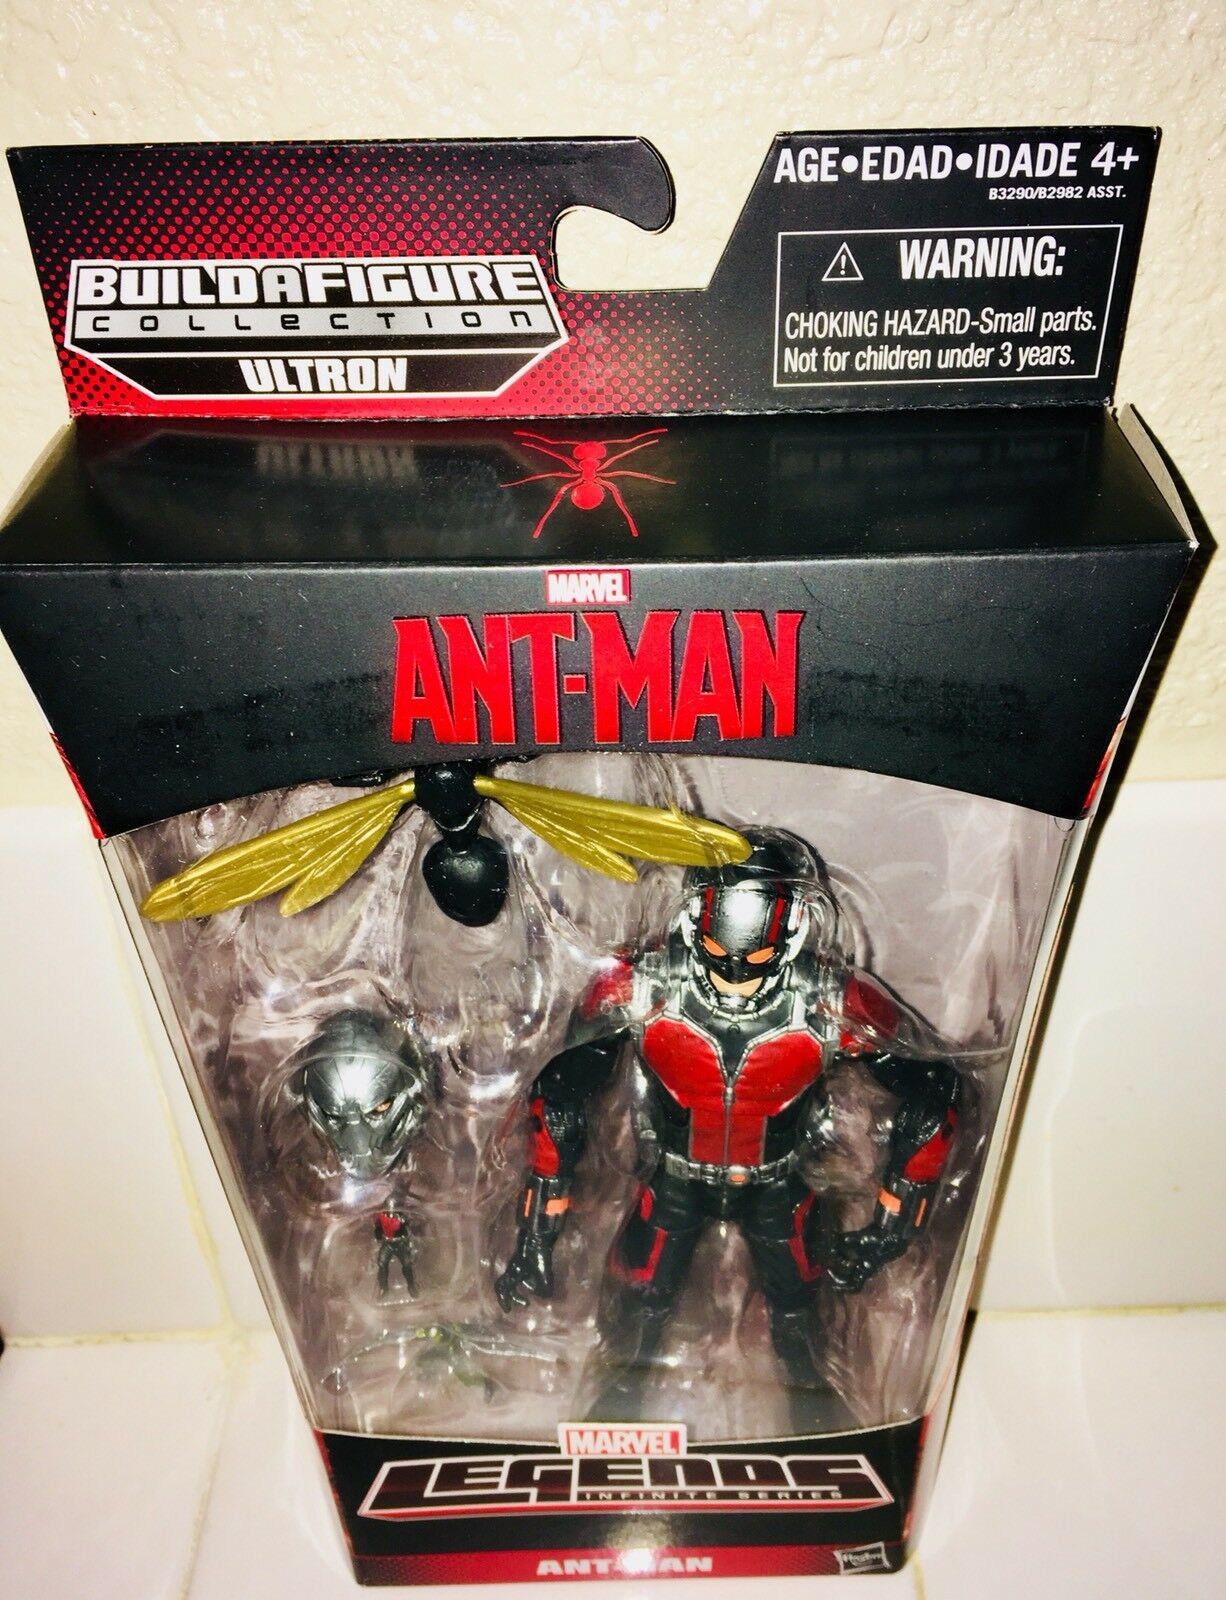 MARVEL LEGENDS ANT-MAN MCU WASP GIANT MAN - MCU ANT-MAN MOVIE 2018 - SOLD OUT HARD TO FIND be16cb